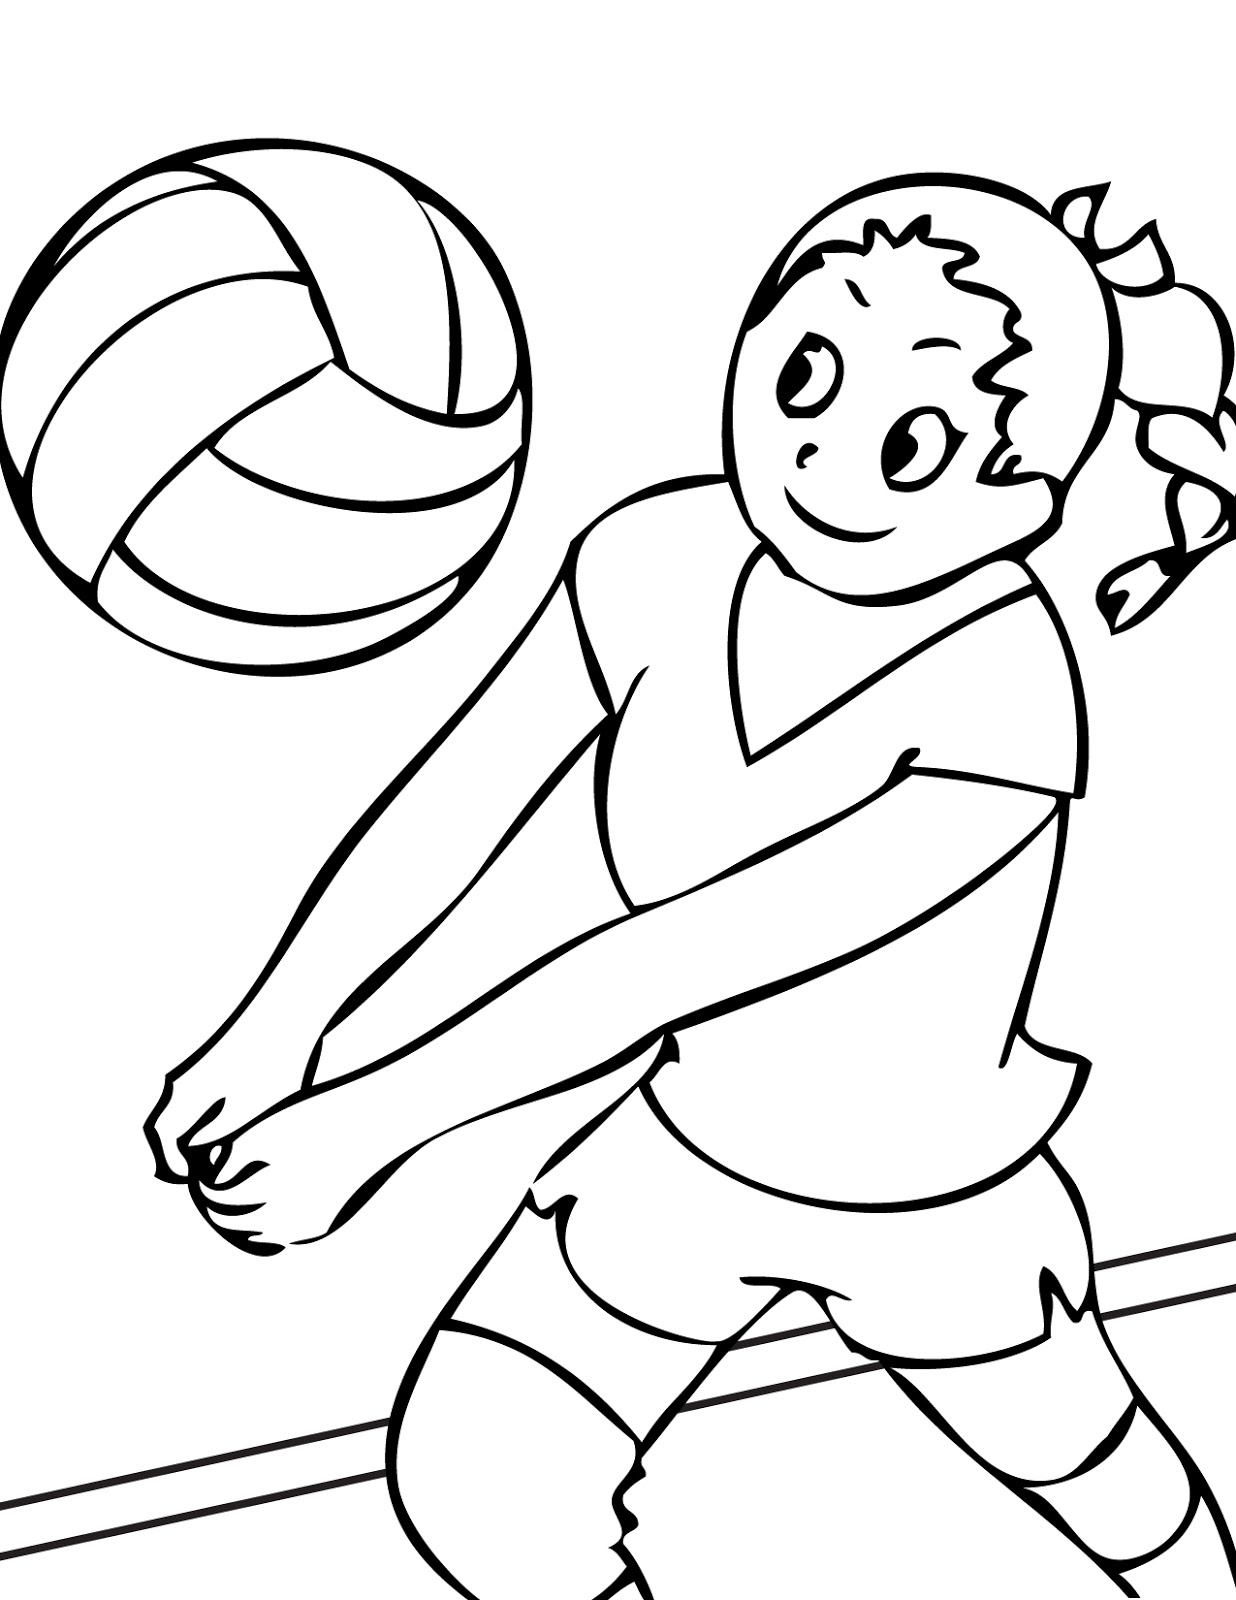 printable volleyball coloring pages - photo#25